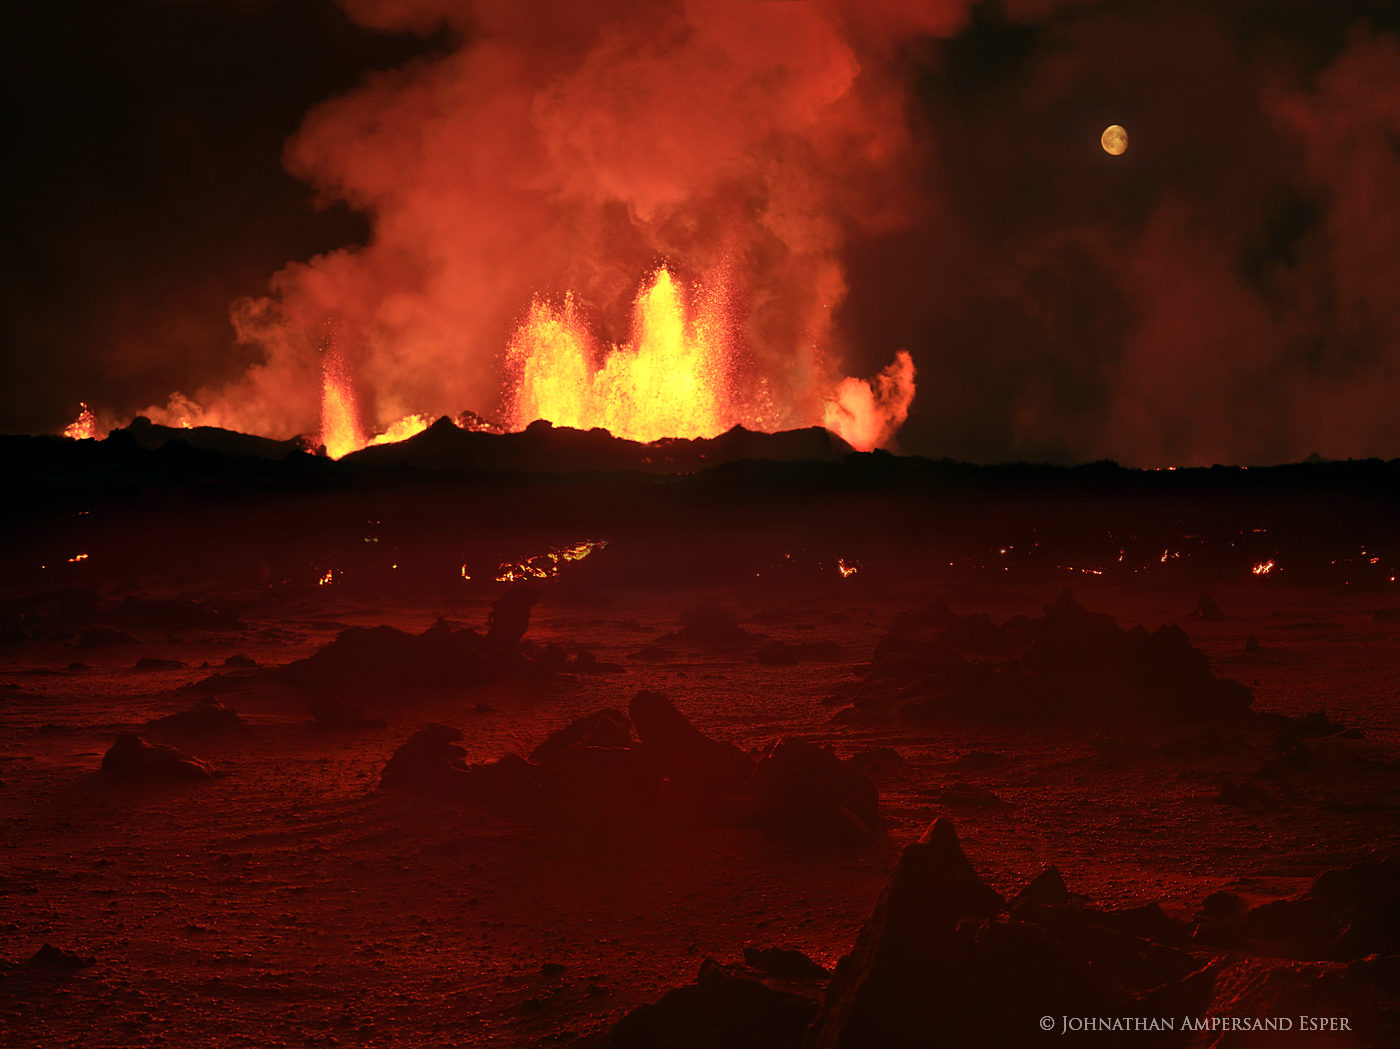 Holuhraun, Iceland, Mars, erupting, eruption, extraterrastrial, fire, fire storm, flow, glow, lava, planet, red, red rocks, volcanic, photo